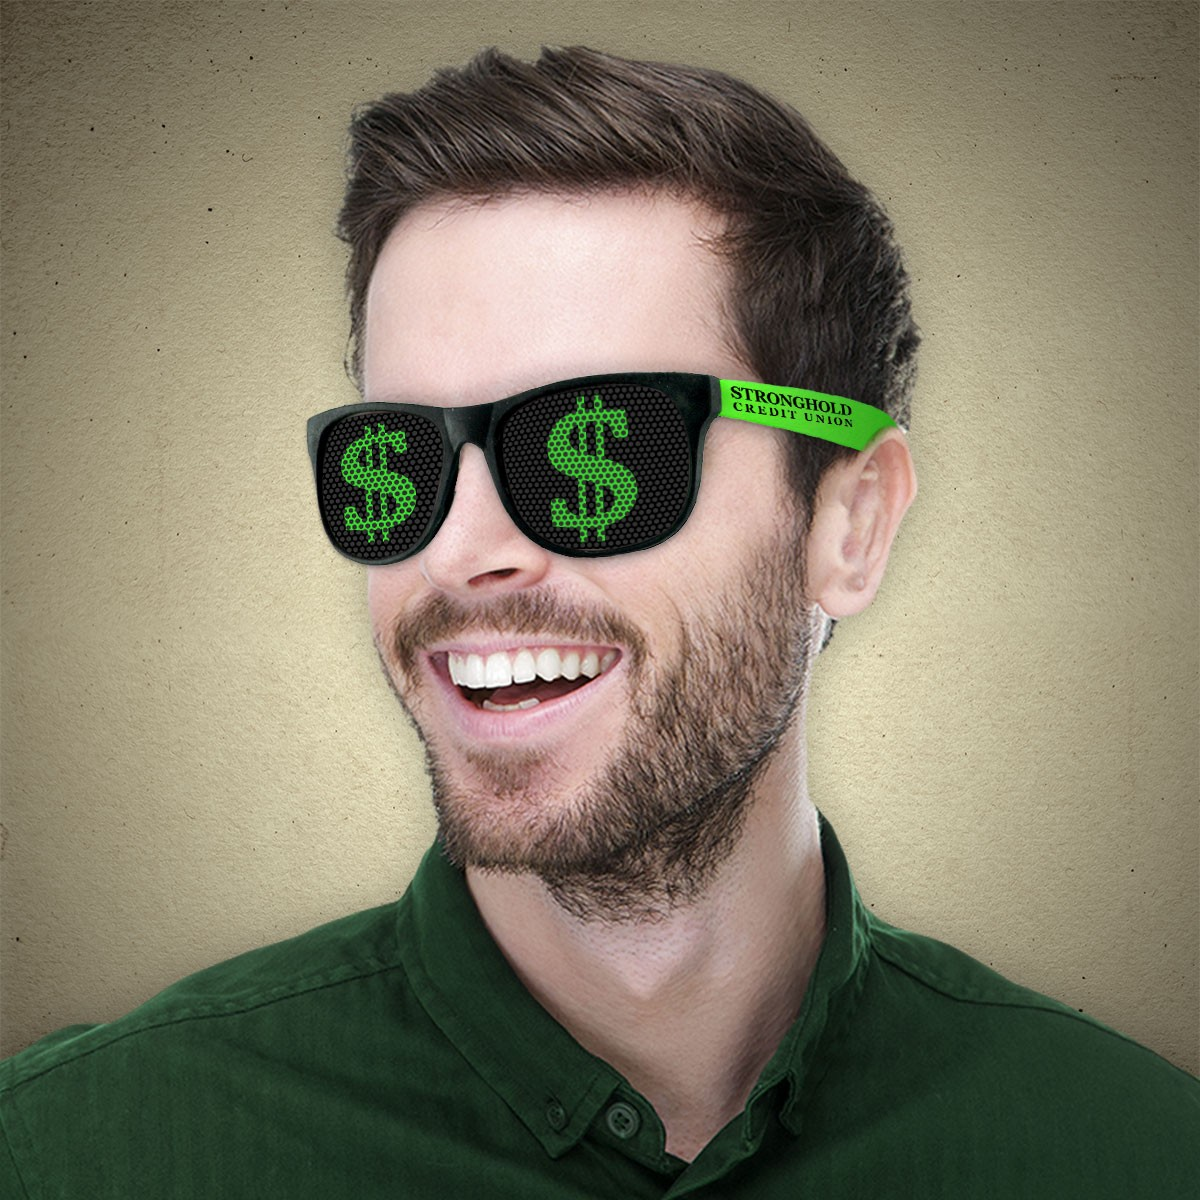 bc0a3570dc53 Dollar Sign Novelty Sunglasses - Sunglasses